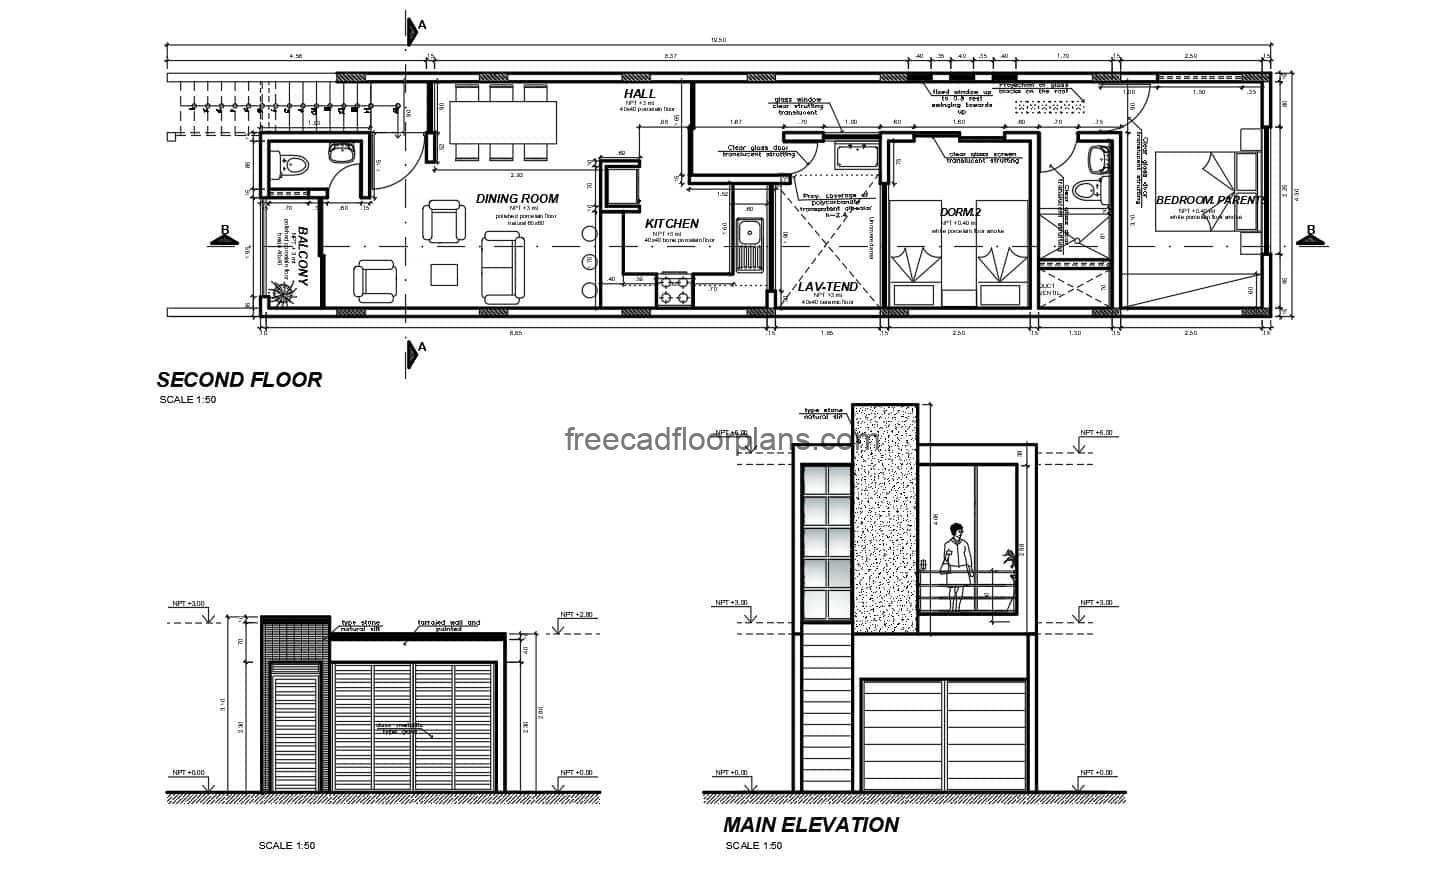 Architectural plans 2D format DWG of Autocad of simple small residence with modern style facade, of two rooms with shared bath, living room, balcony, kitchen, dining room and laundry area. CAD plans for free download, editable autocad blocks